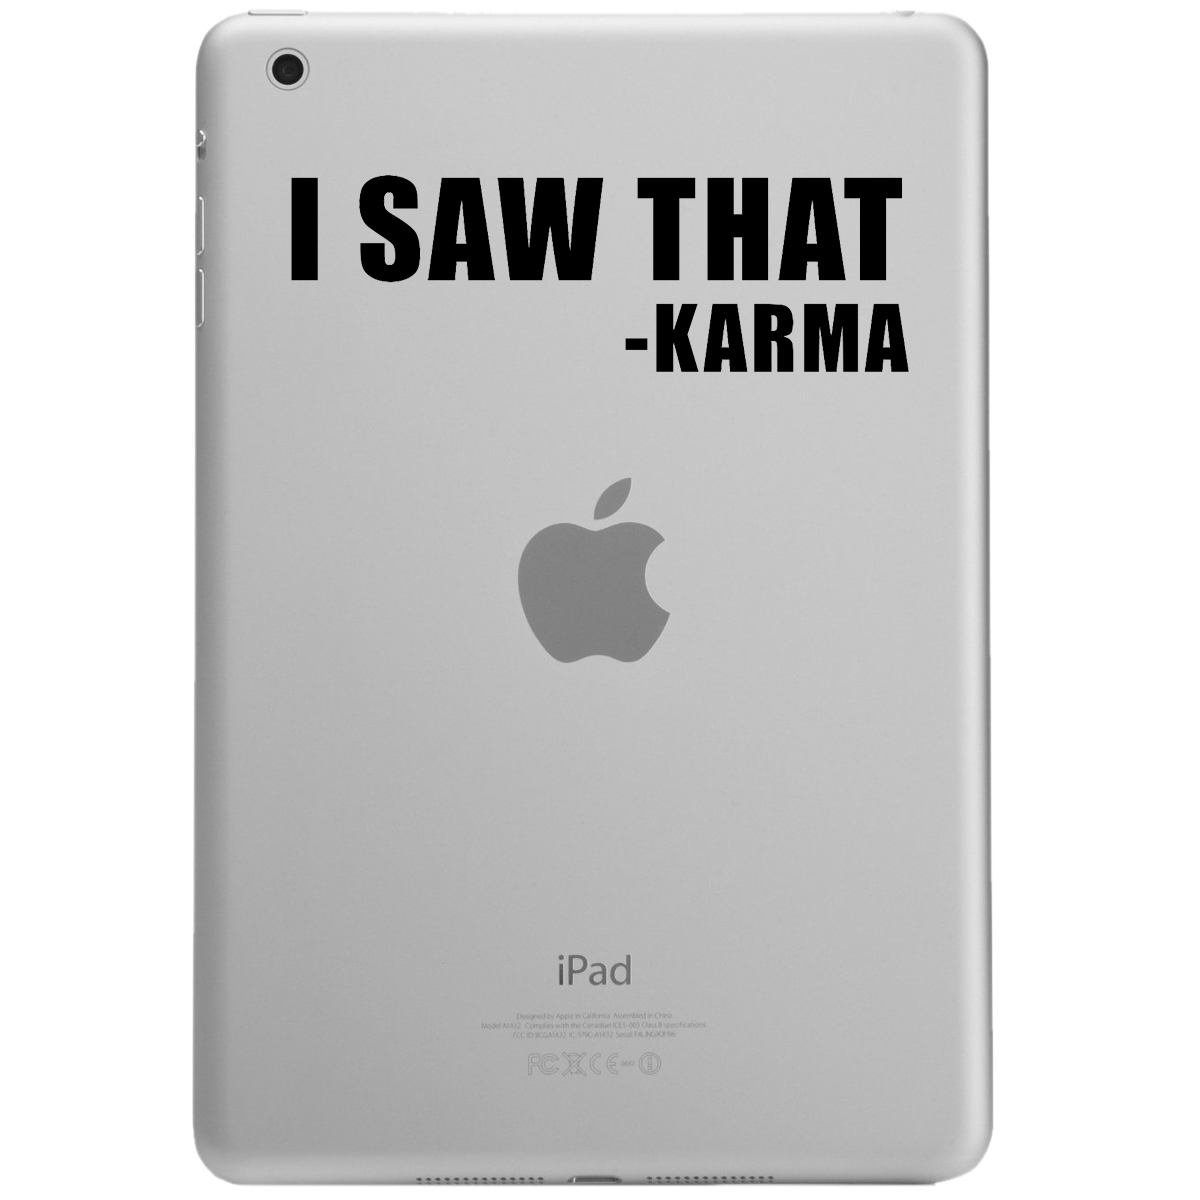 Funny I Saw That Karma iPad Tablet Vinyl Sticker Decal